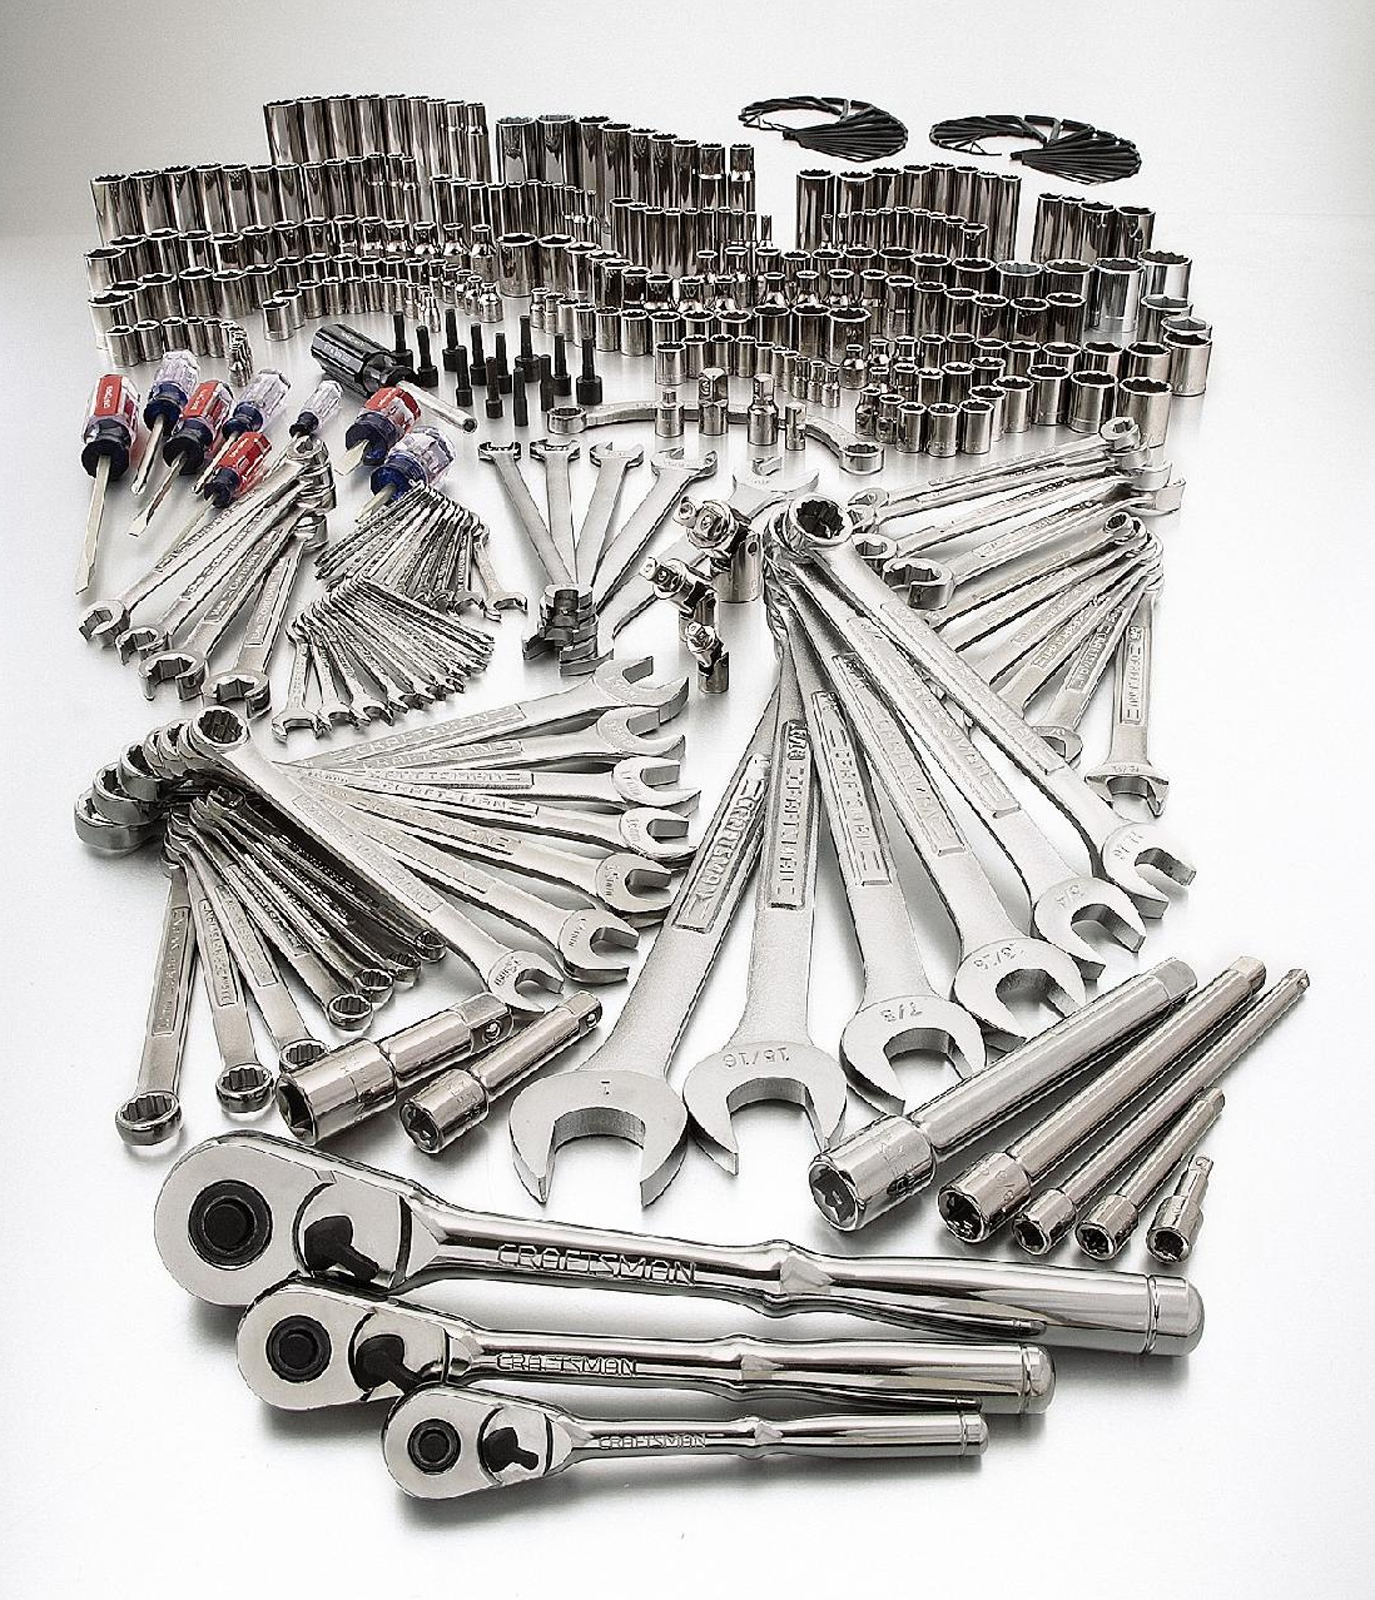 Craftsman 348 pc. Mechanics Tool Set